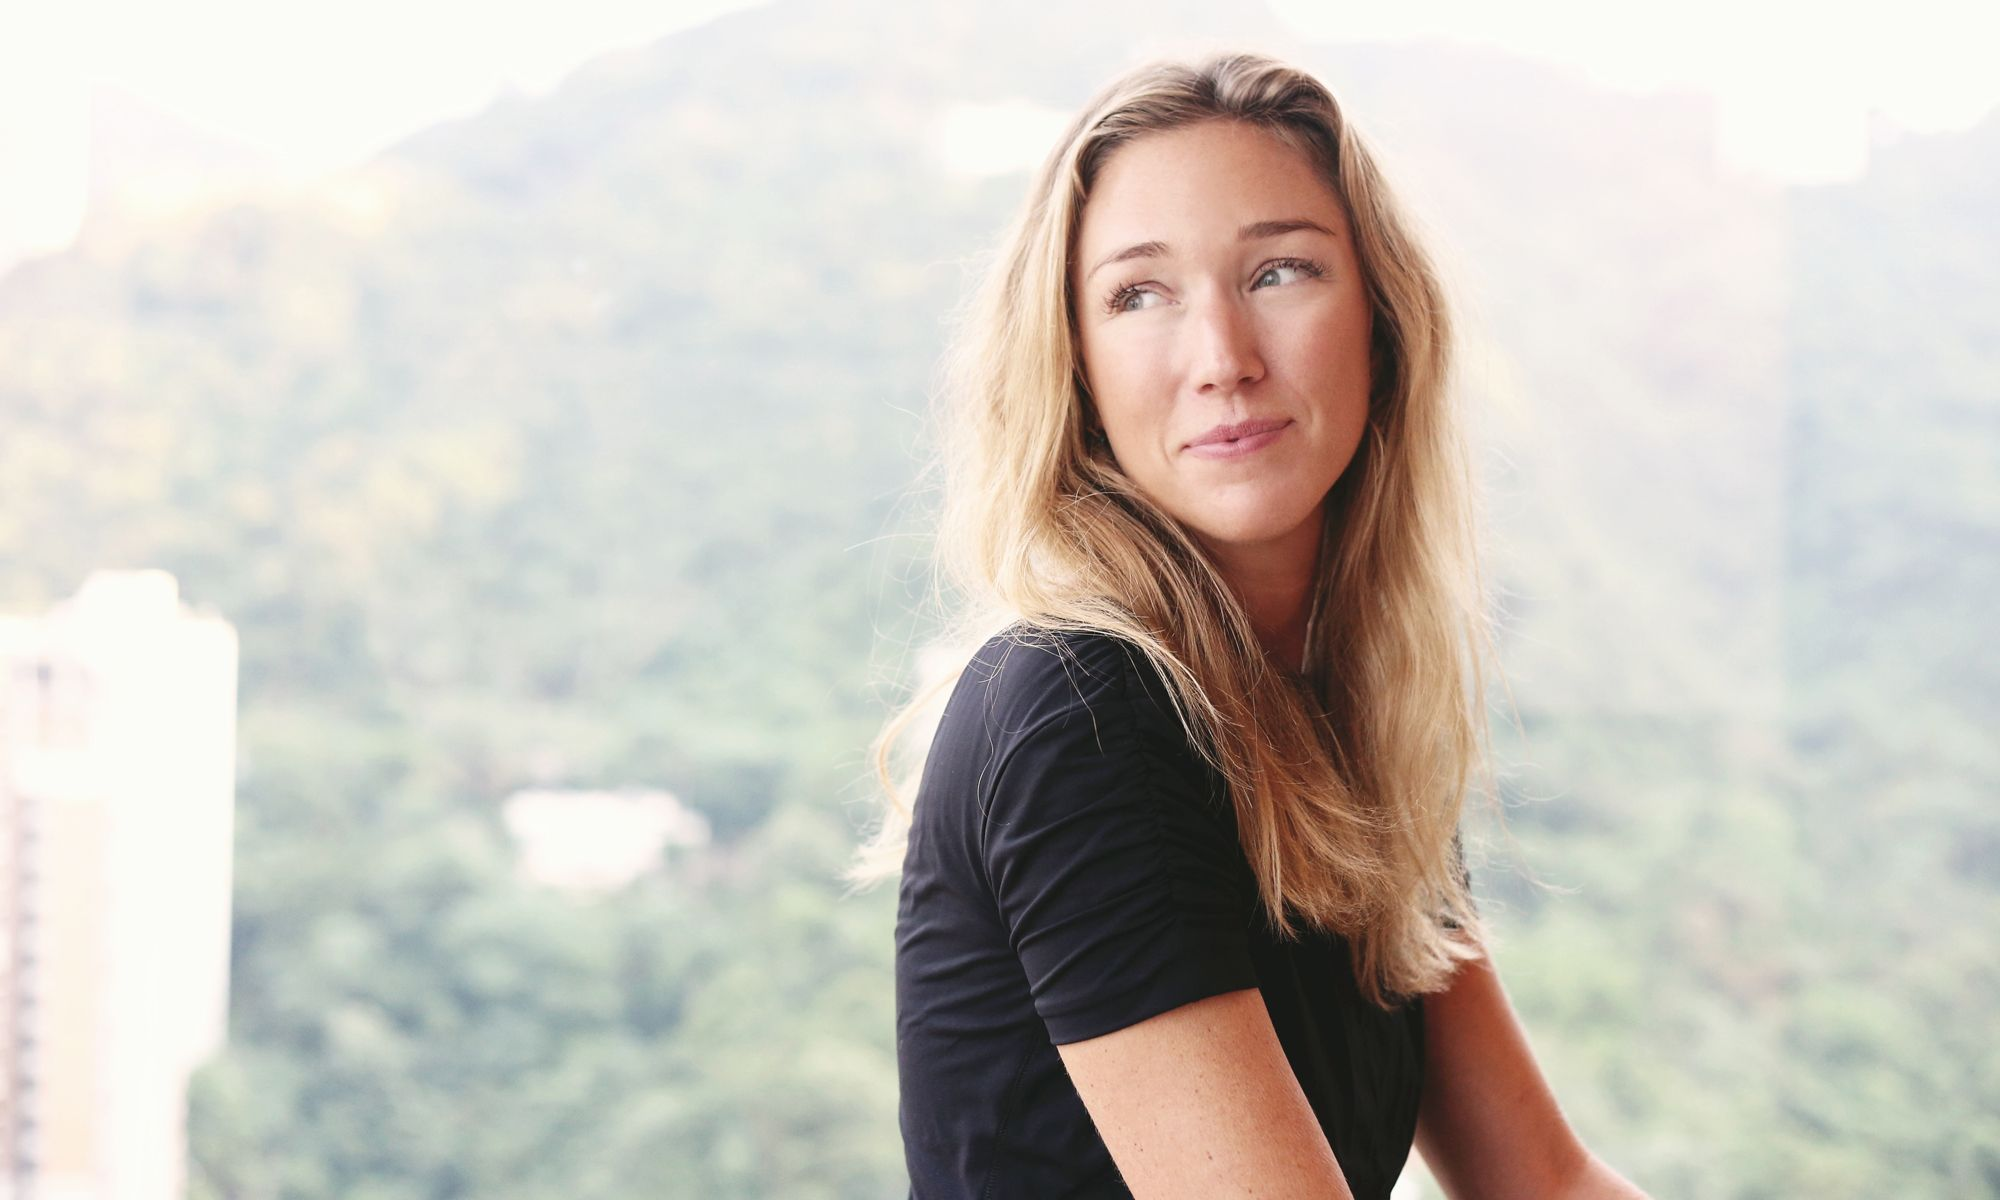 Emilie Duchêne on Business, Travel, and the Power of Instagram